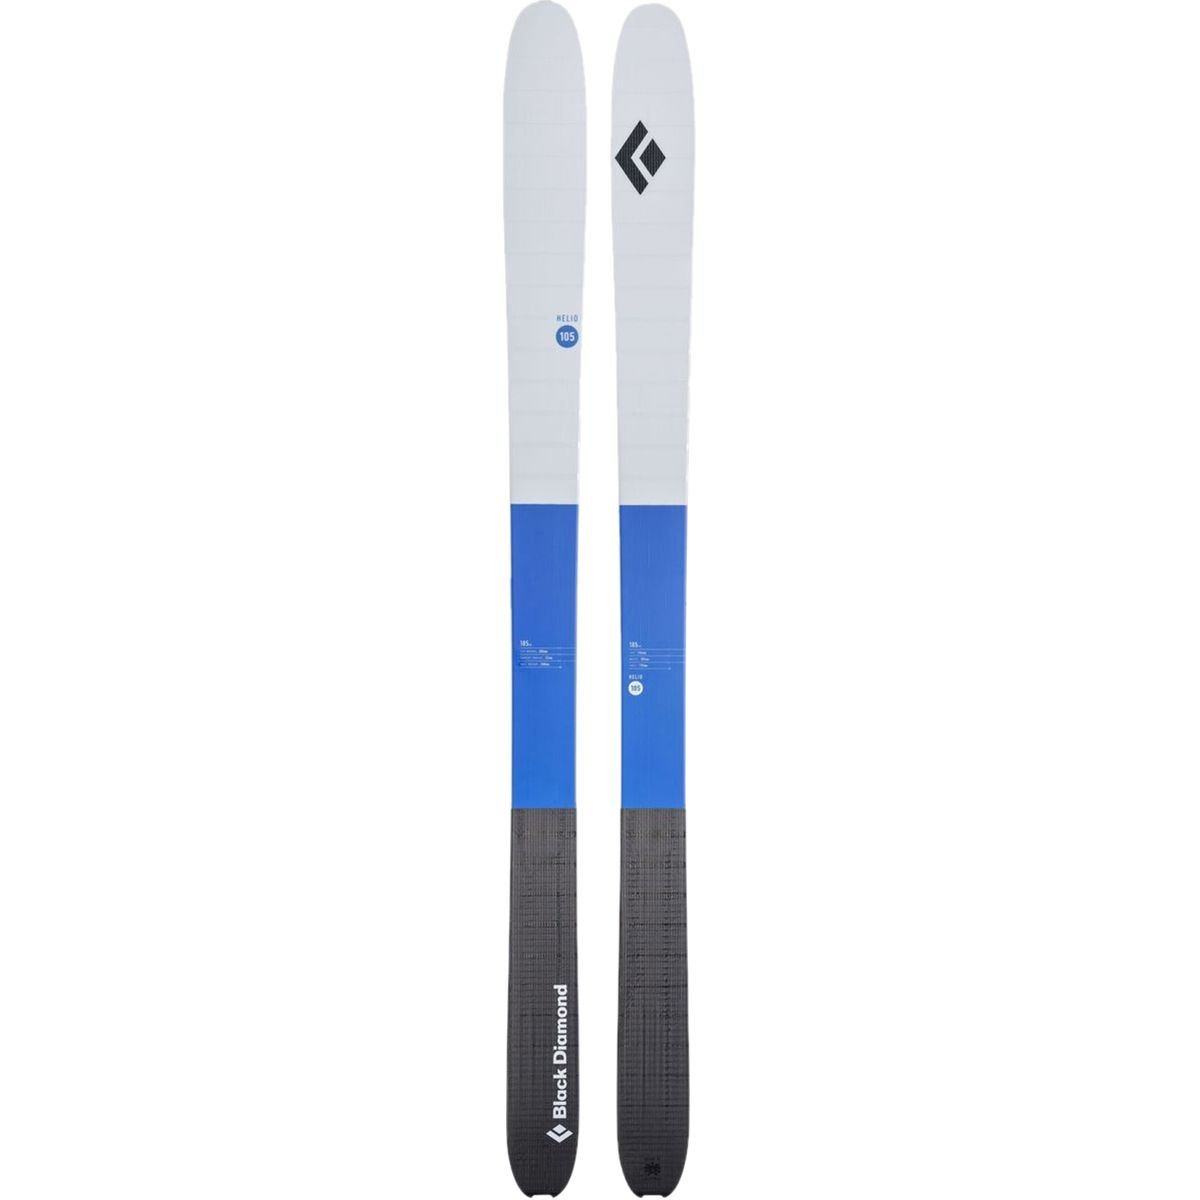 BLACK DIAMOND Helio 105 Carbon Ski Pwell Blue 165